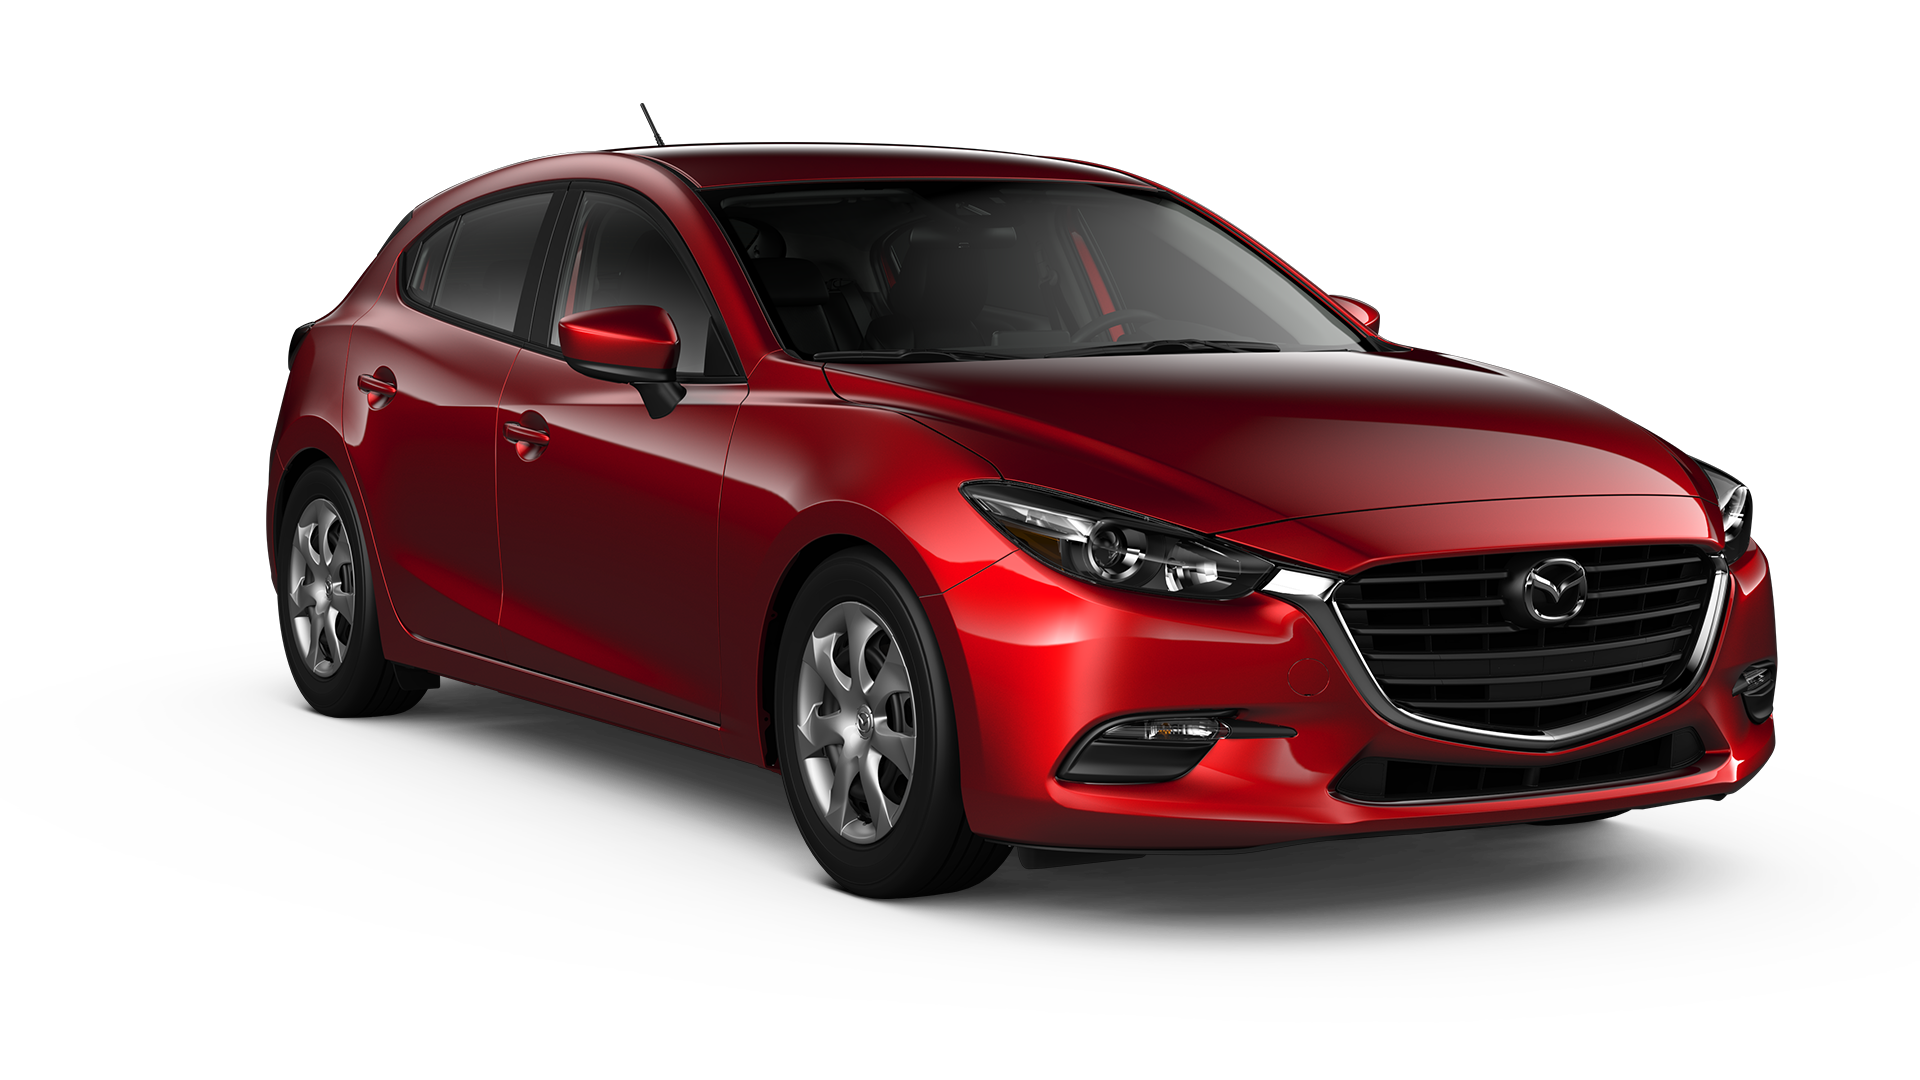 2018 mazda3 sport 5 door hatchback mazda canada. Black Bedroom Furniture Sets. Home Design Ideas